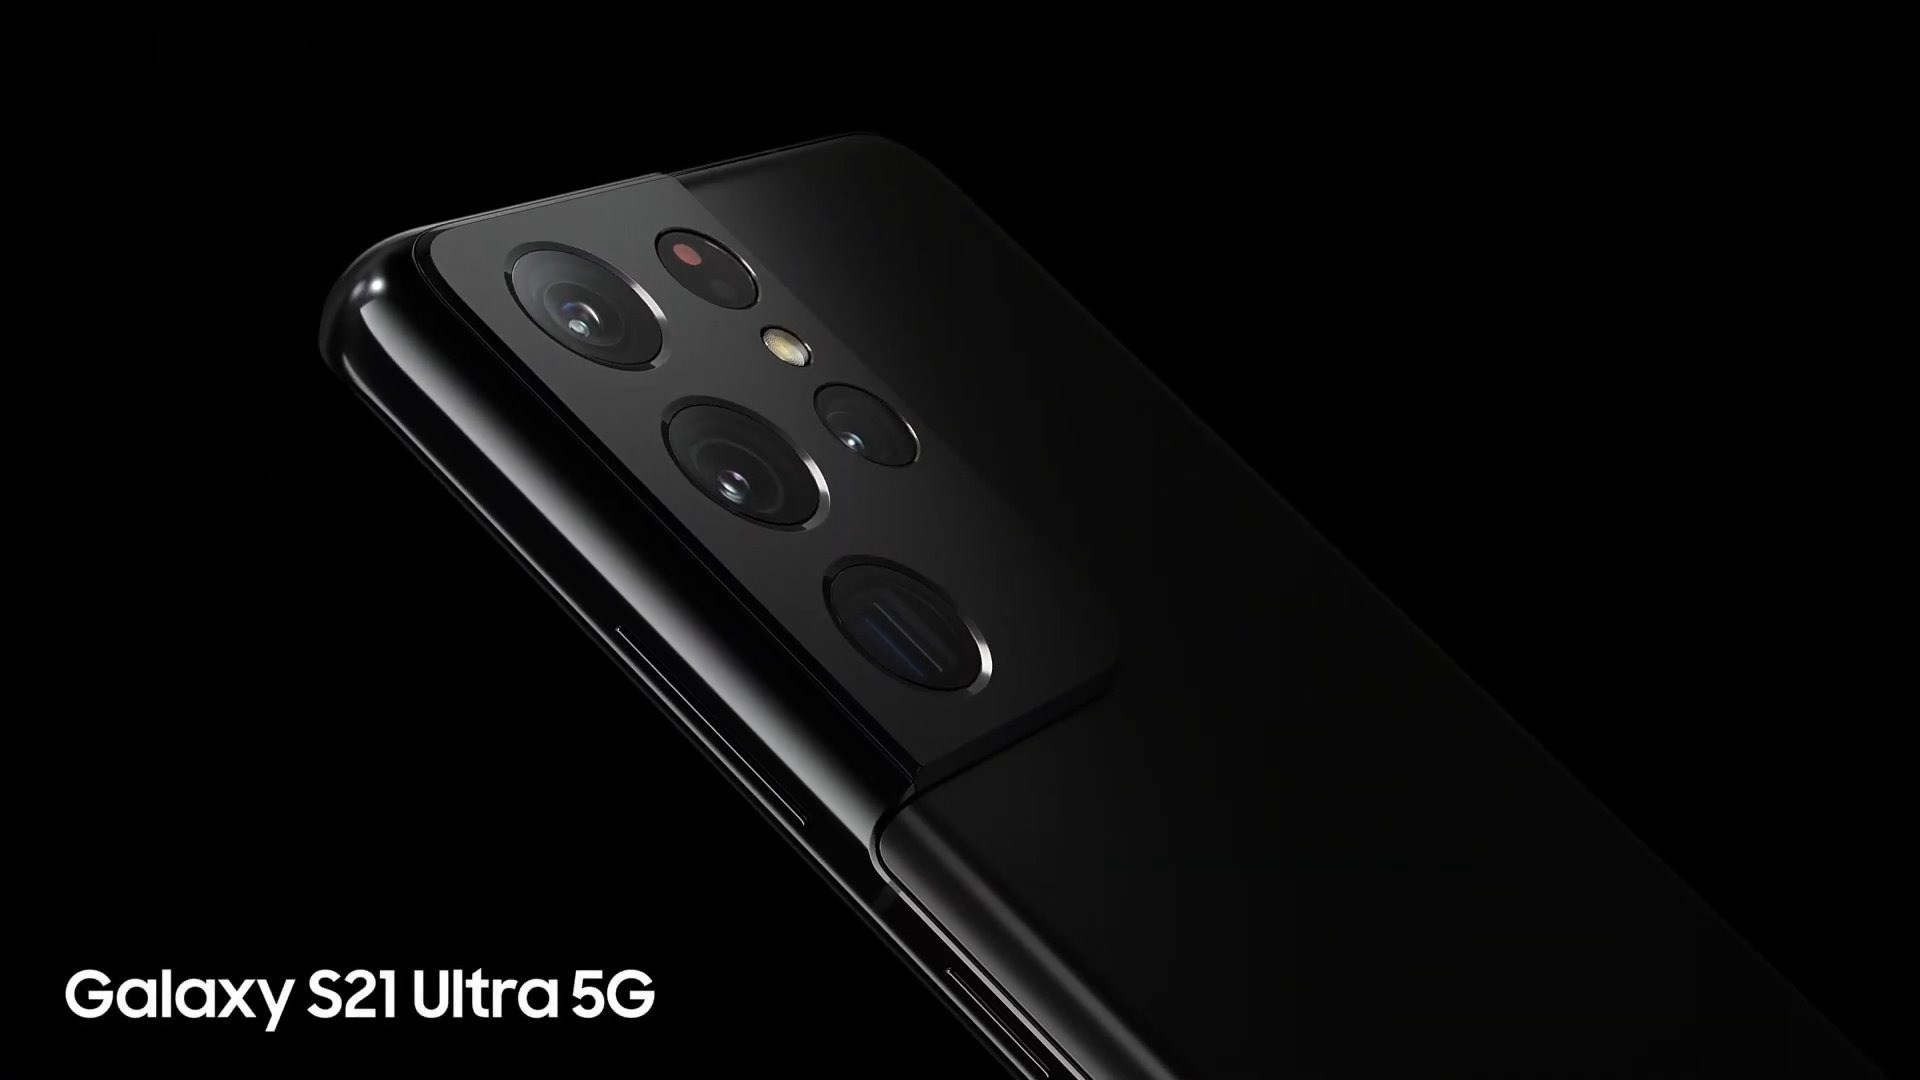 Smartphone, Android, Samsung, Ces, Samsung Galaxy S21, Galaxy S21, Samsung Unpacked, Samsung Galaxy S21 Ultra, Ces 2021, Unpacked Event, Samsung Galaxy S21 Ultra 5G, S21 Ultra, Samsung Galaxy Unpacked